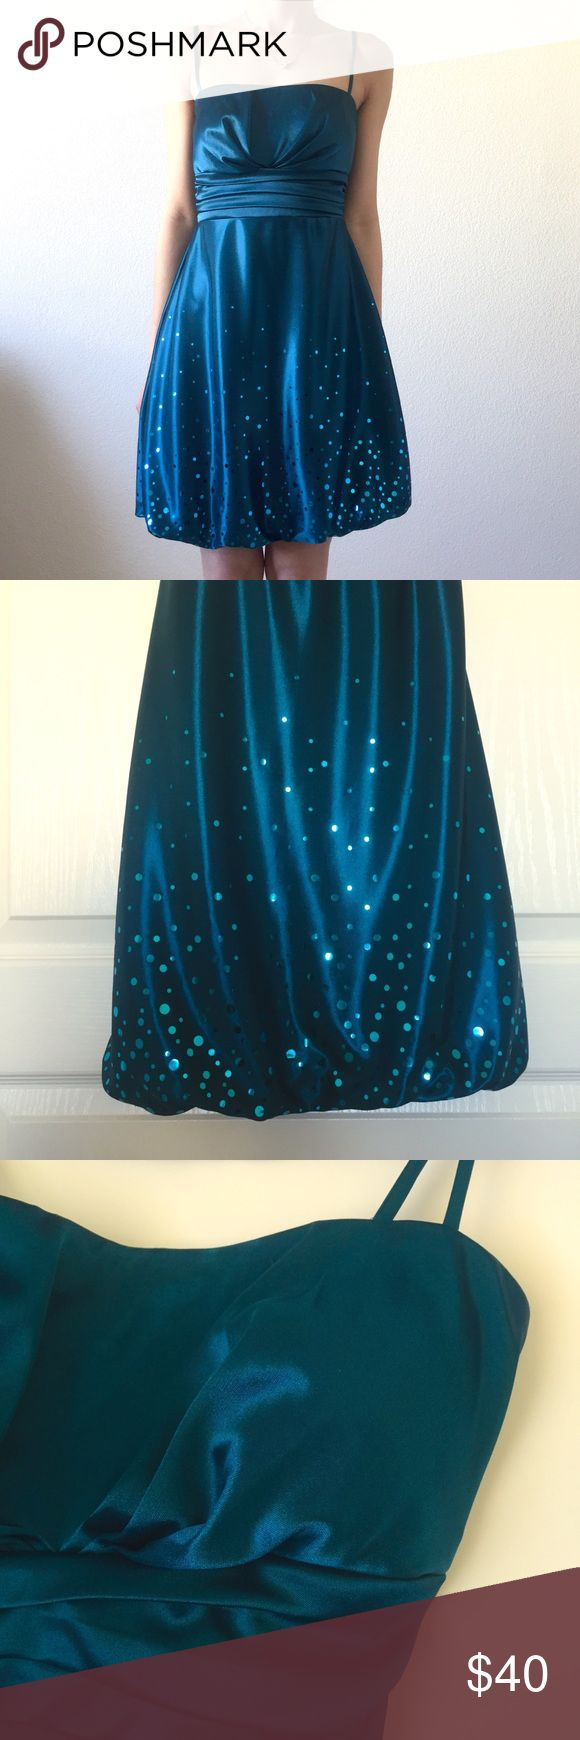 """Teal Dress New. Worn once. No flaws.  The dress is really hard to capture. Closest color is 1st pic, a really rich silky teal. The sequin/sparkle- not sure what to call them- reminds me of bubbling champagne.  Size Guide: Armpit to armpit: 14"""" Waist: 13"""" Length (armpit to hem): 24.5"""" Model measurements: 32A BUST • 24.5"""" WAIST • 32"""" HIP • 5' 2""""  Feel free to shoot me an offer, or ask any questions! :) Speechless Dresses"""